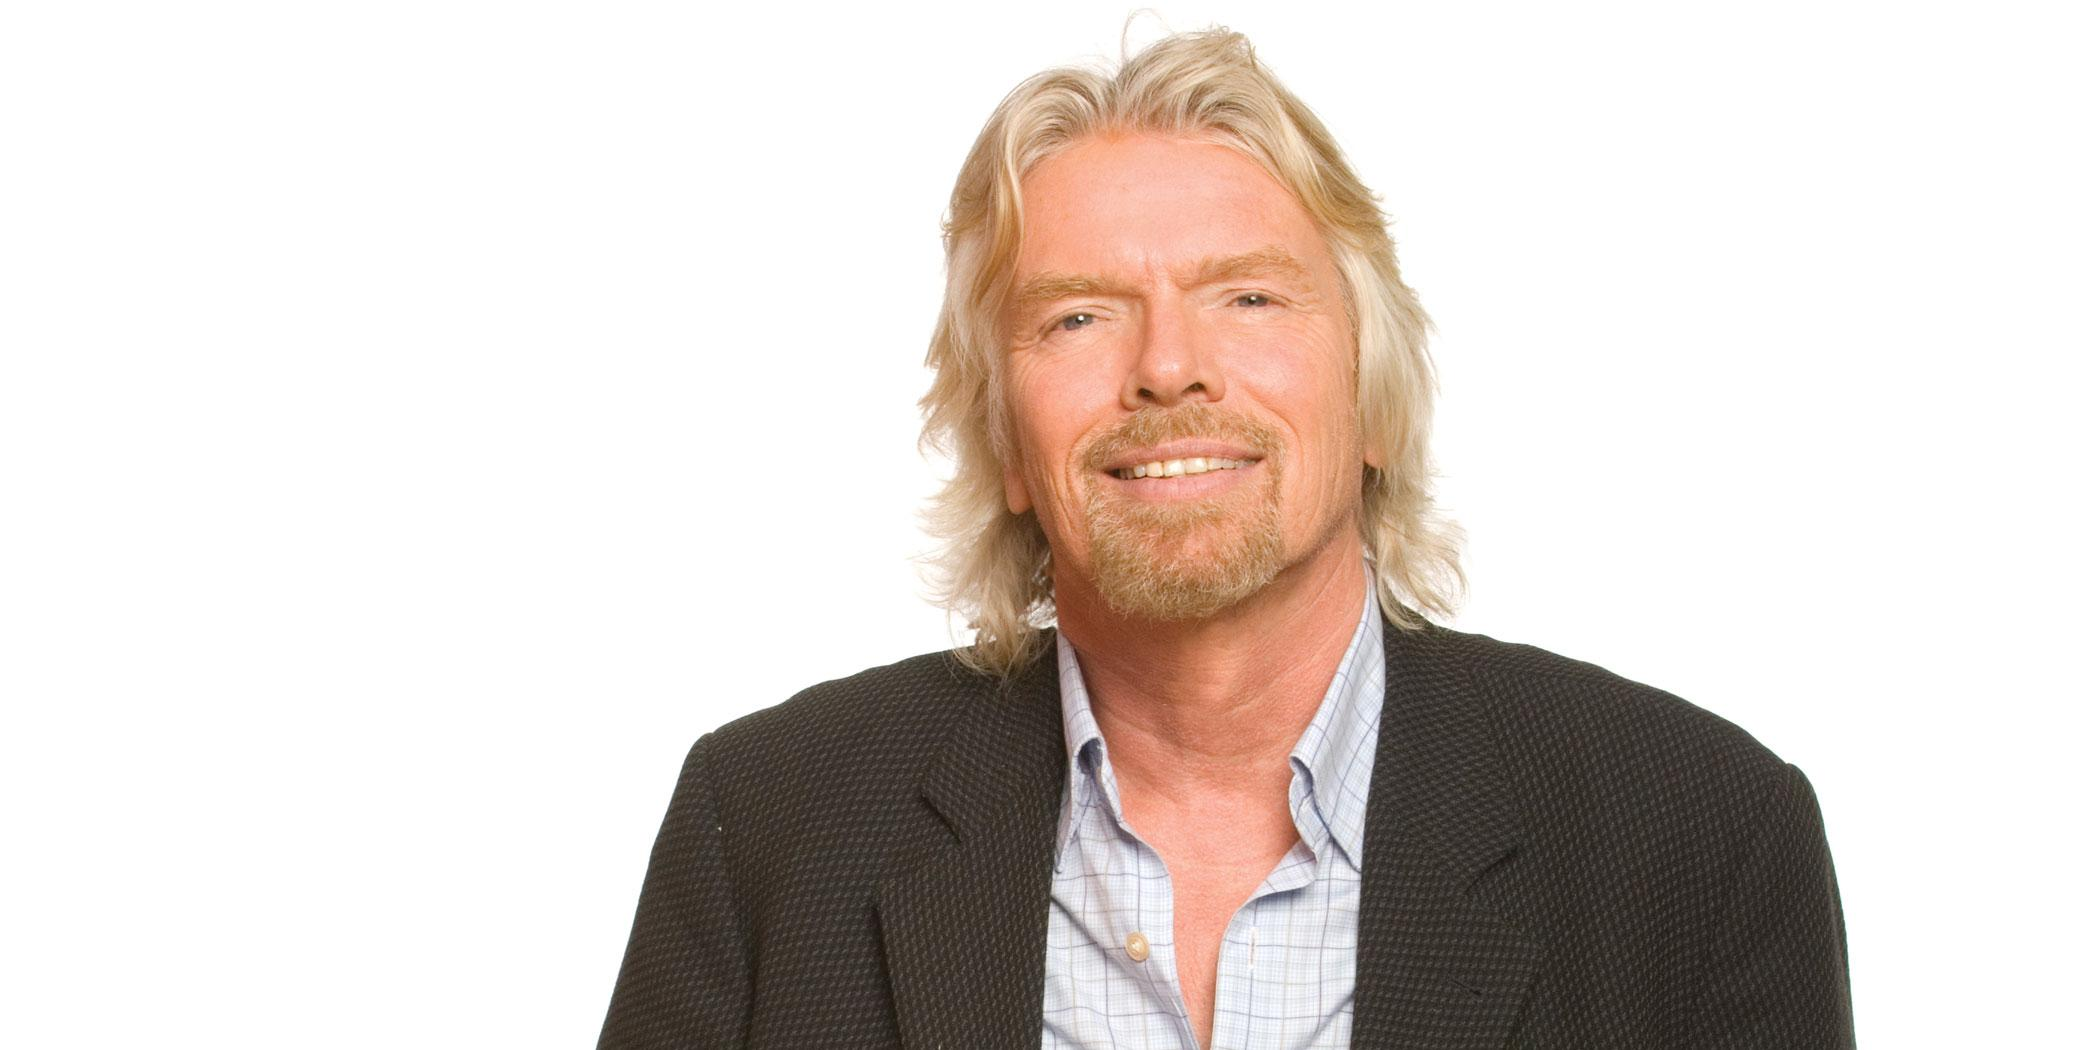 Sir Richard Branson, entrepreneur  (Photo: Bill Bernstein)